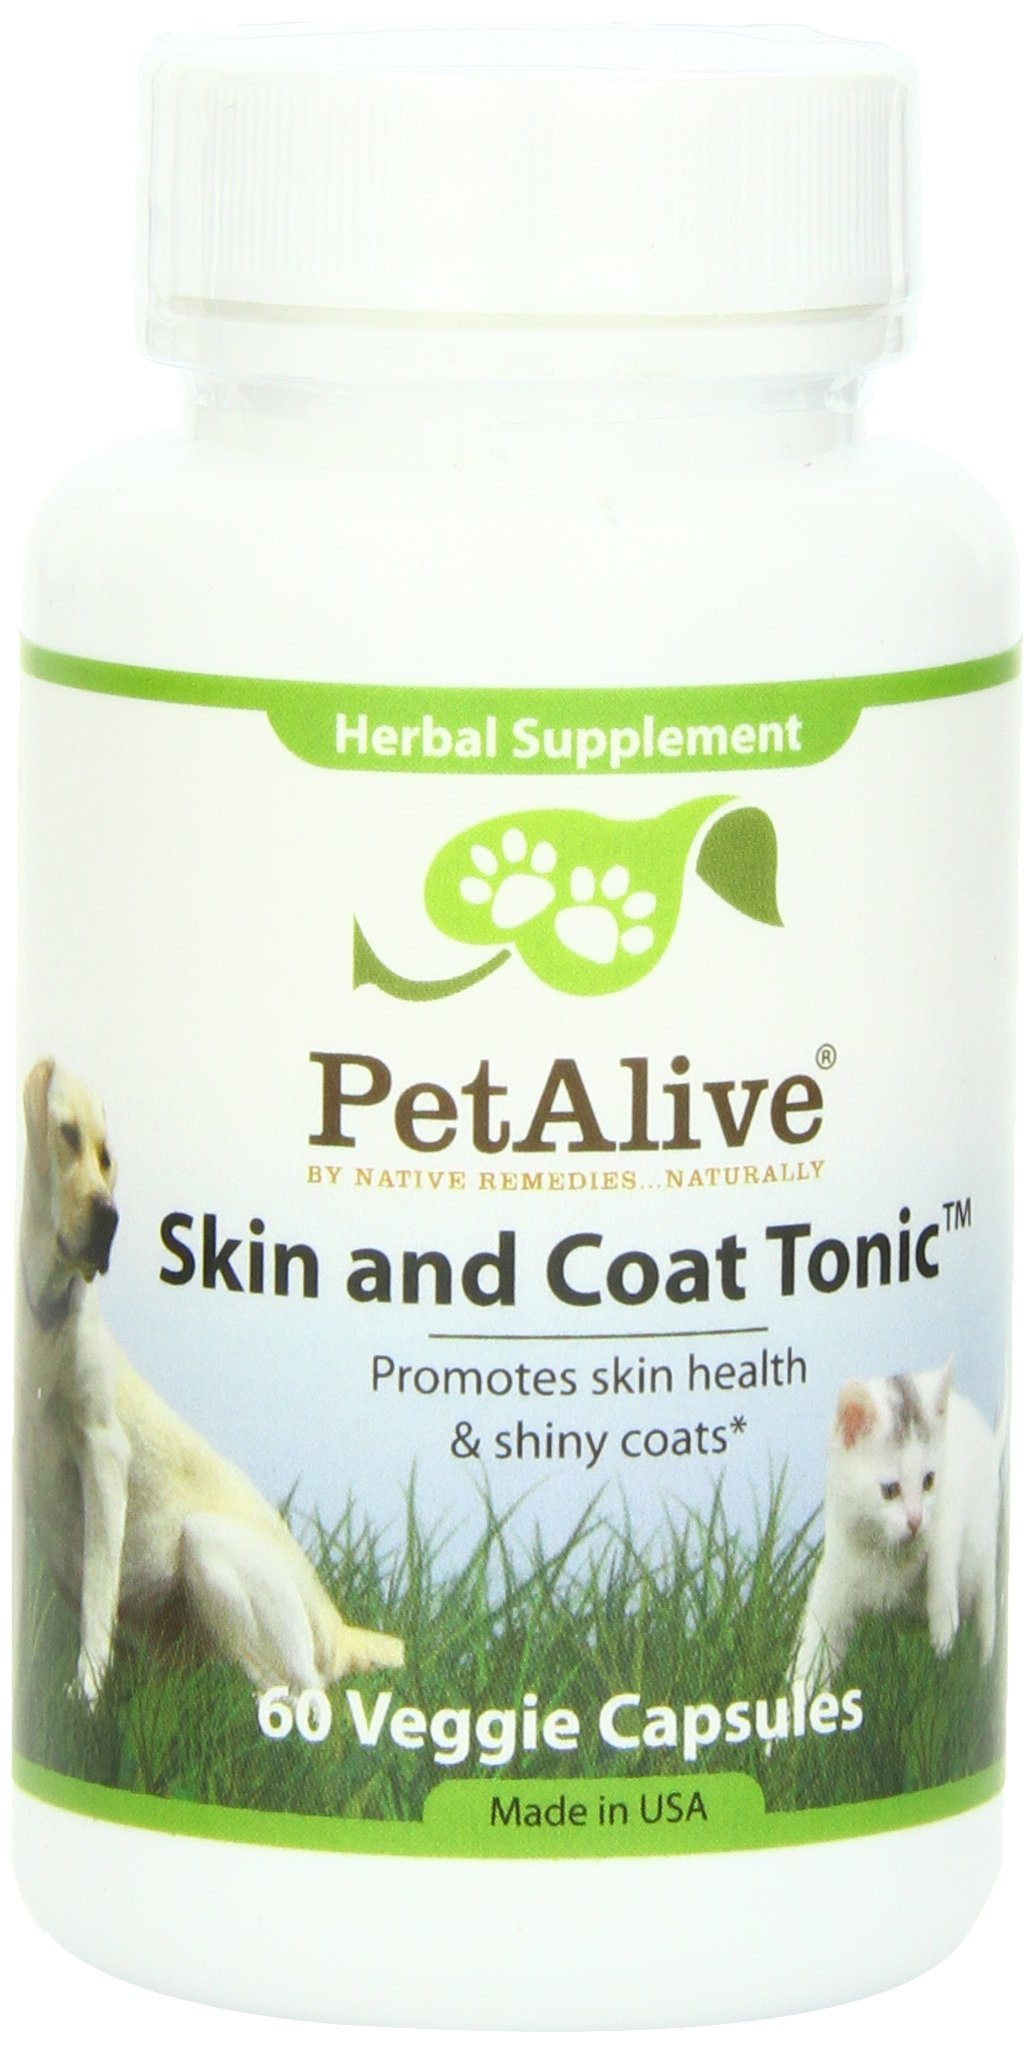 PetAlive Skin and Coat Tonic for Healthy Skin (60 Caps)